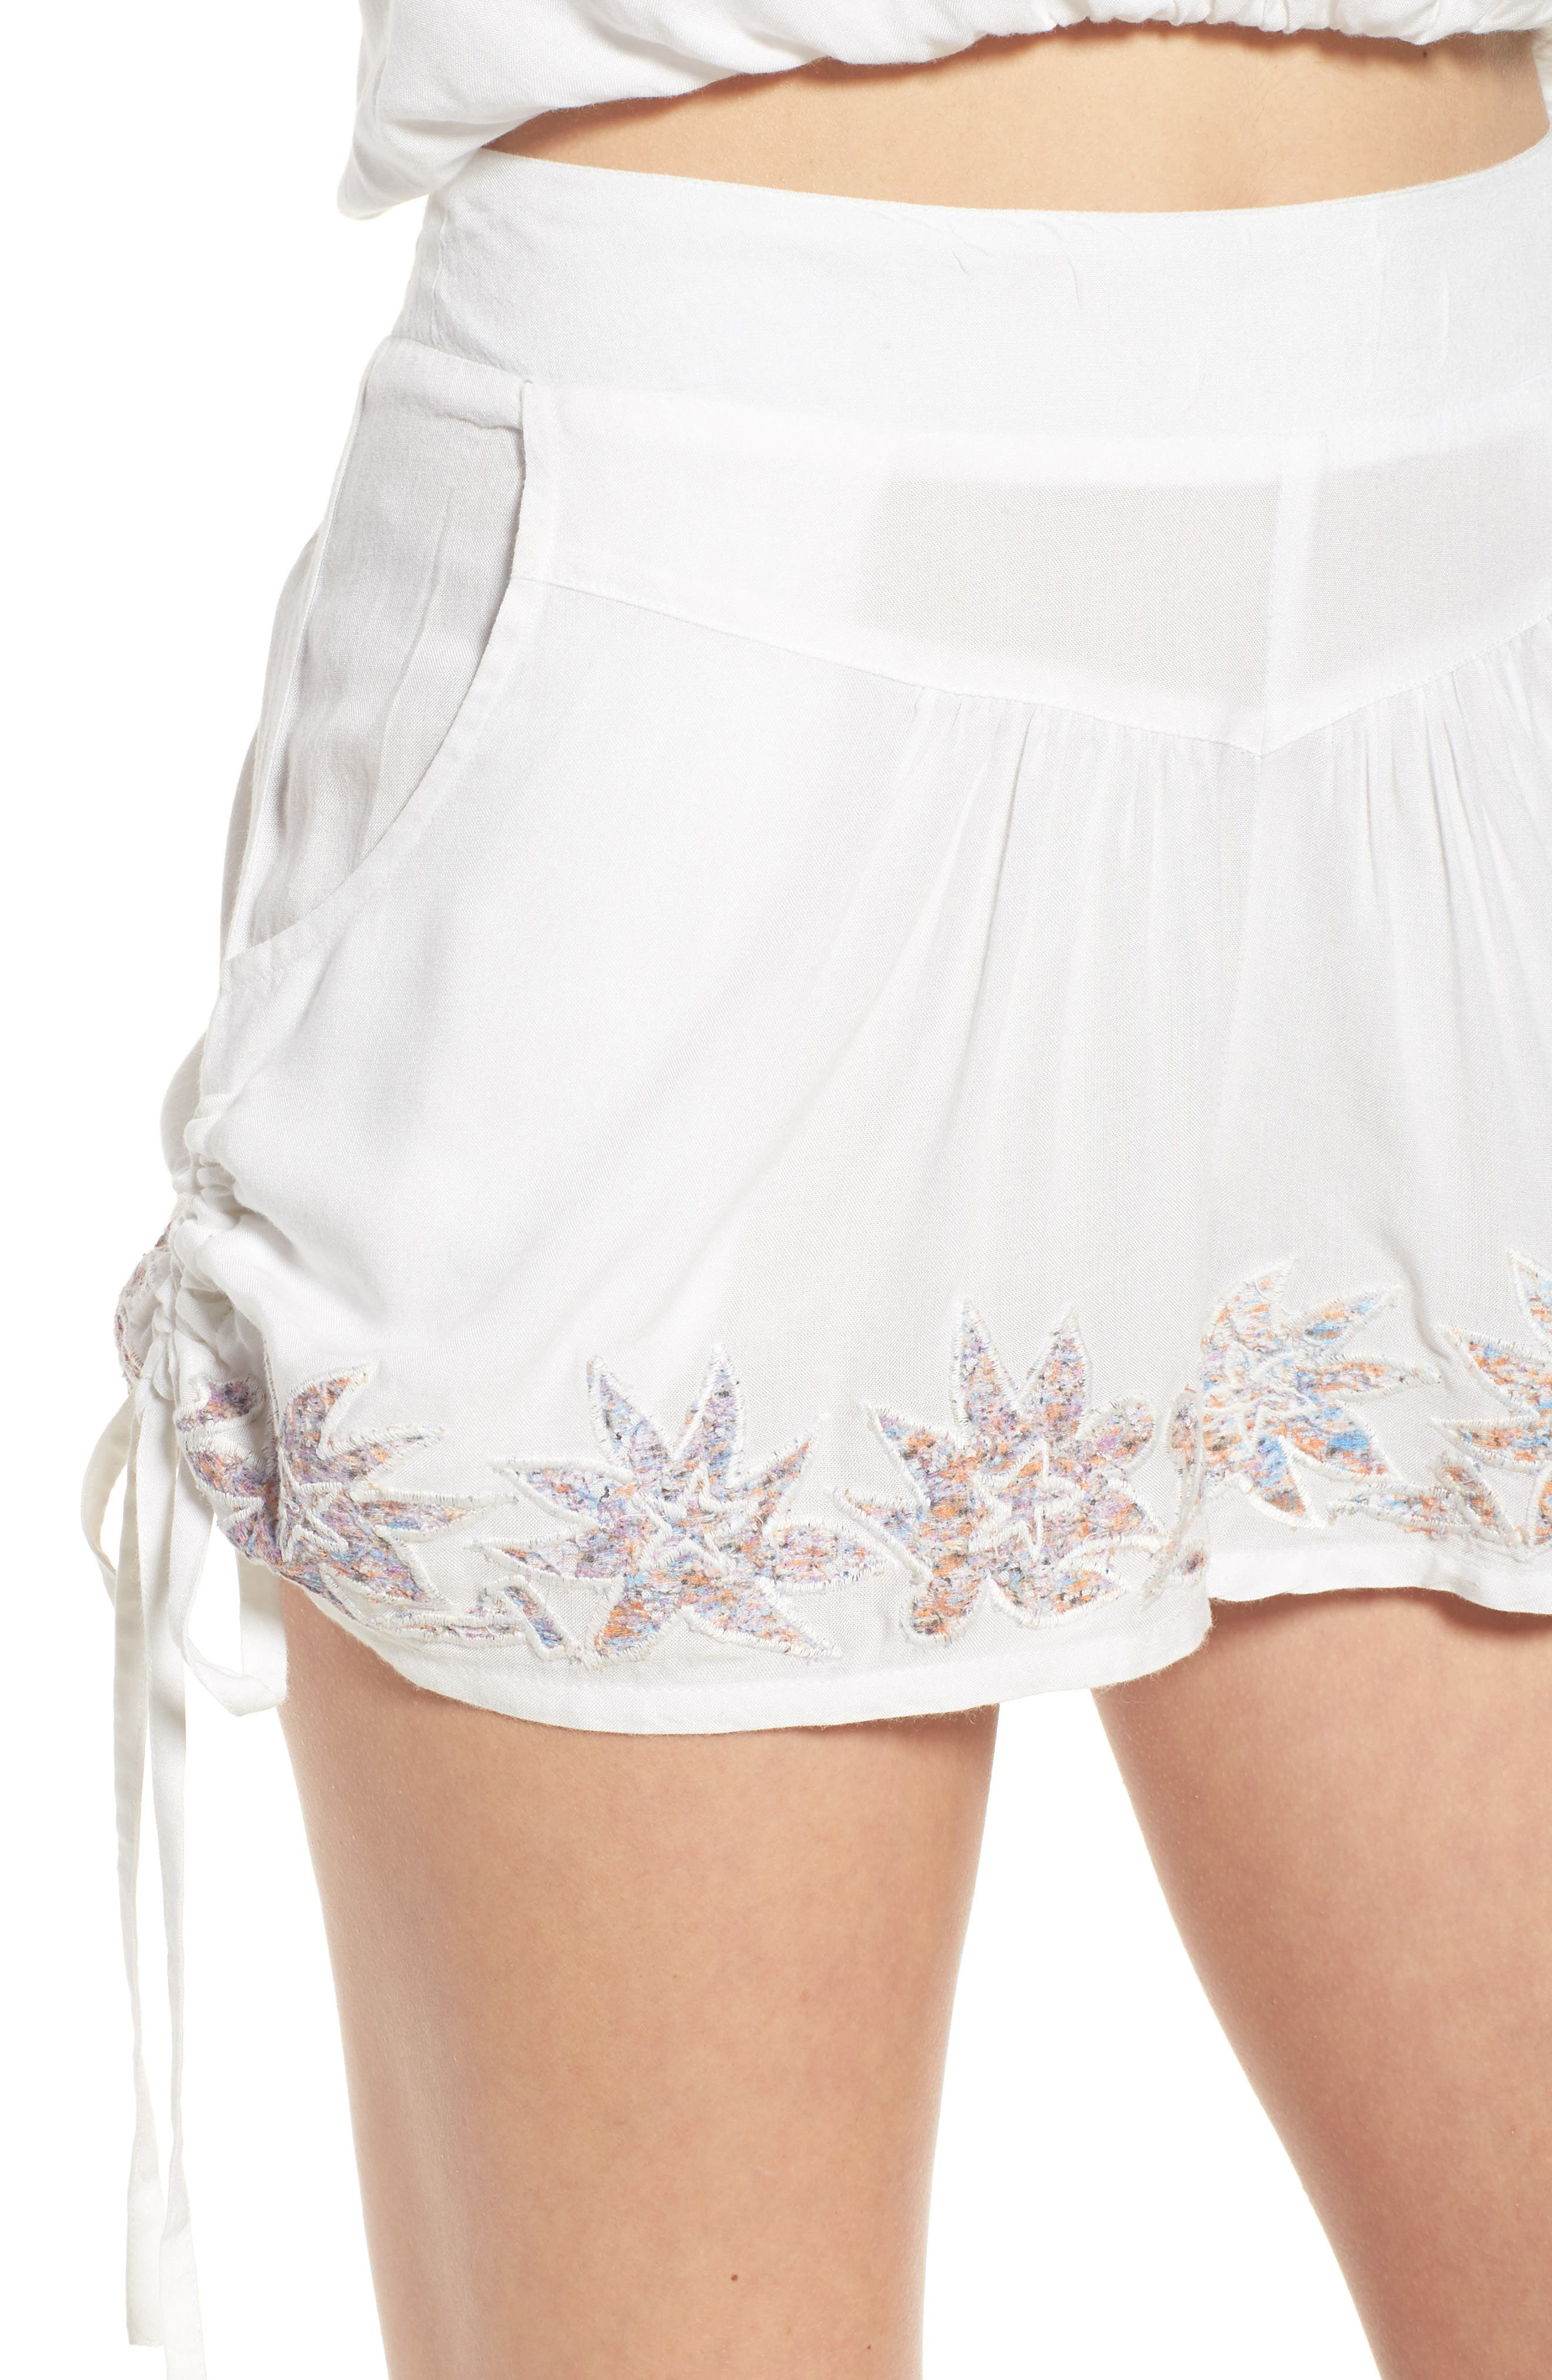 Lotus Love Side Tie Shorts,                             Alternate thumbnail 4, color,                             100